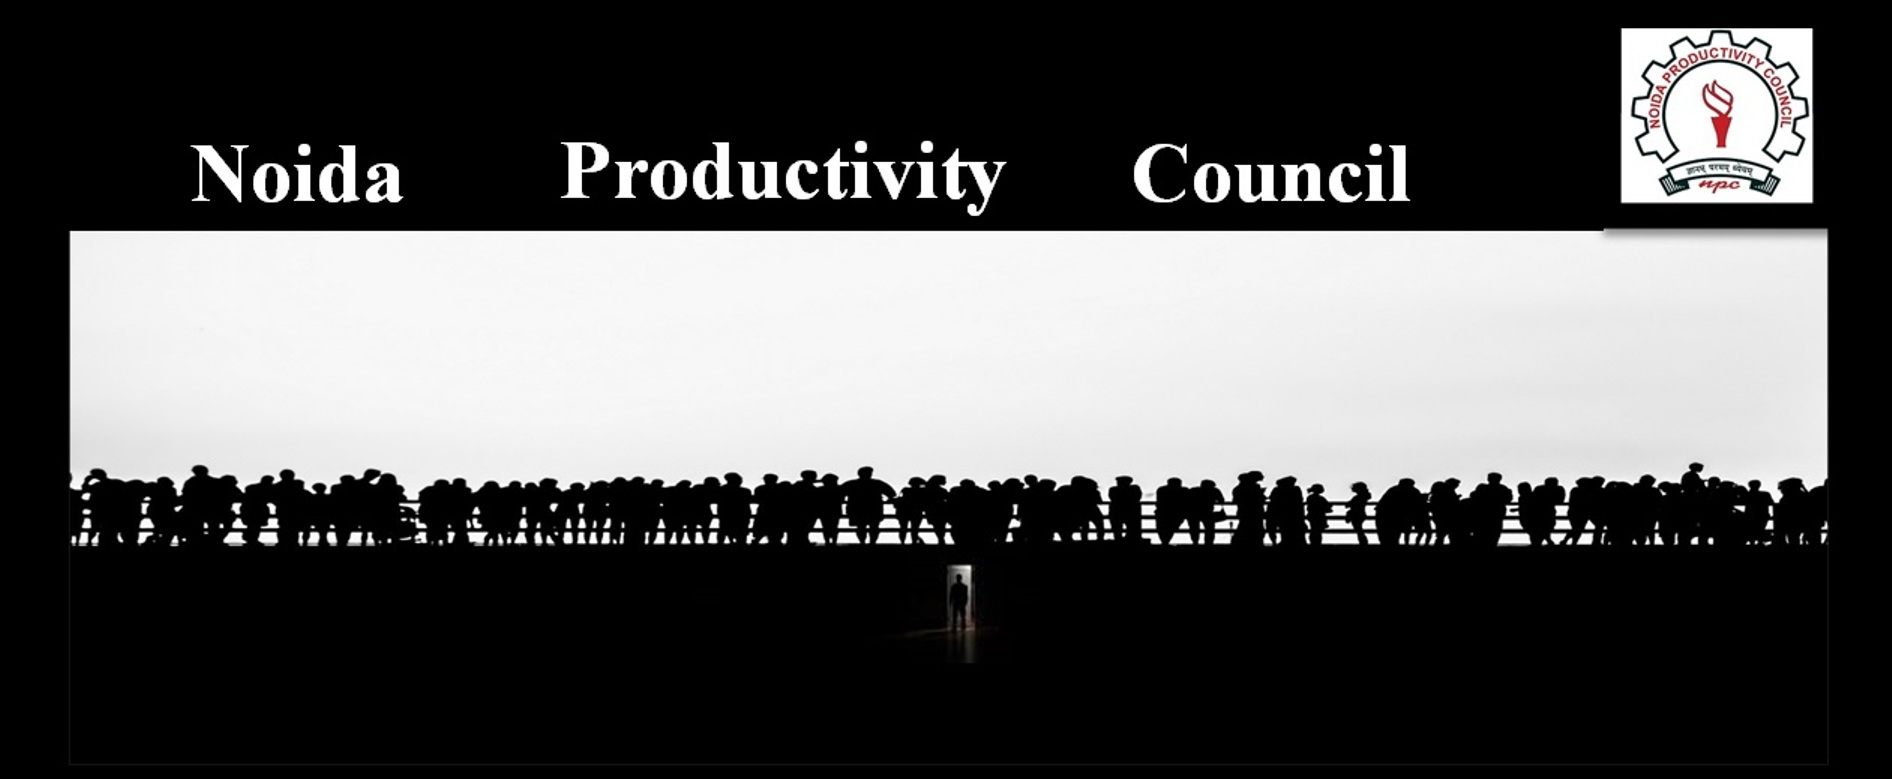 Noida Productivity Council